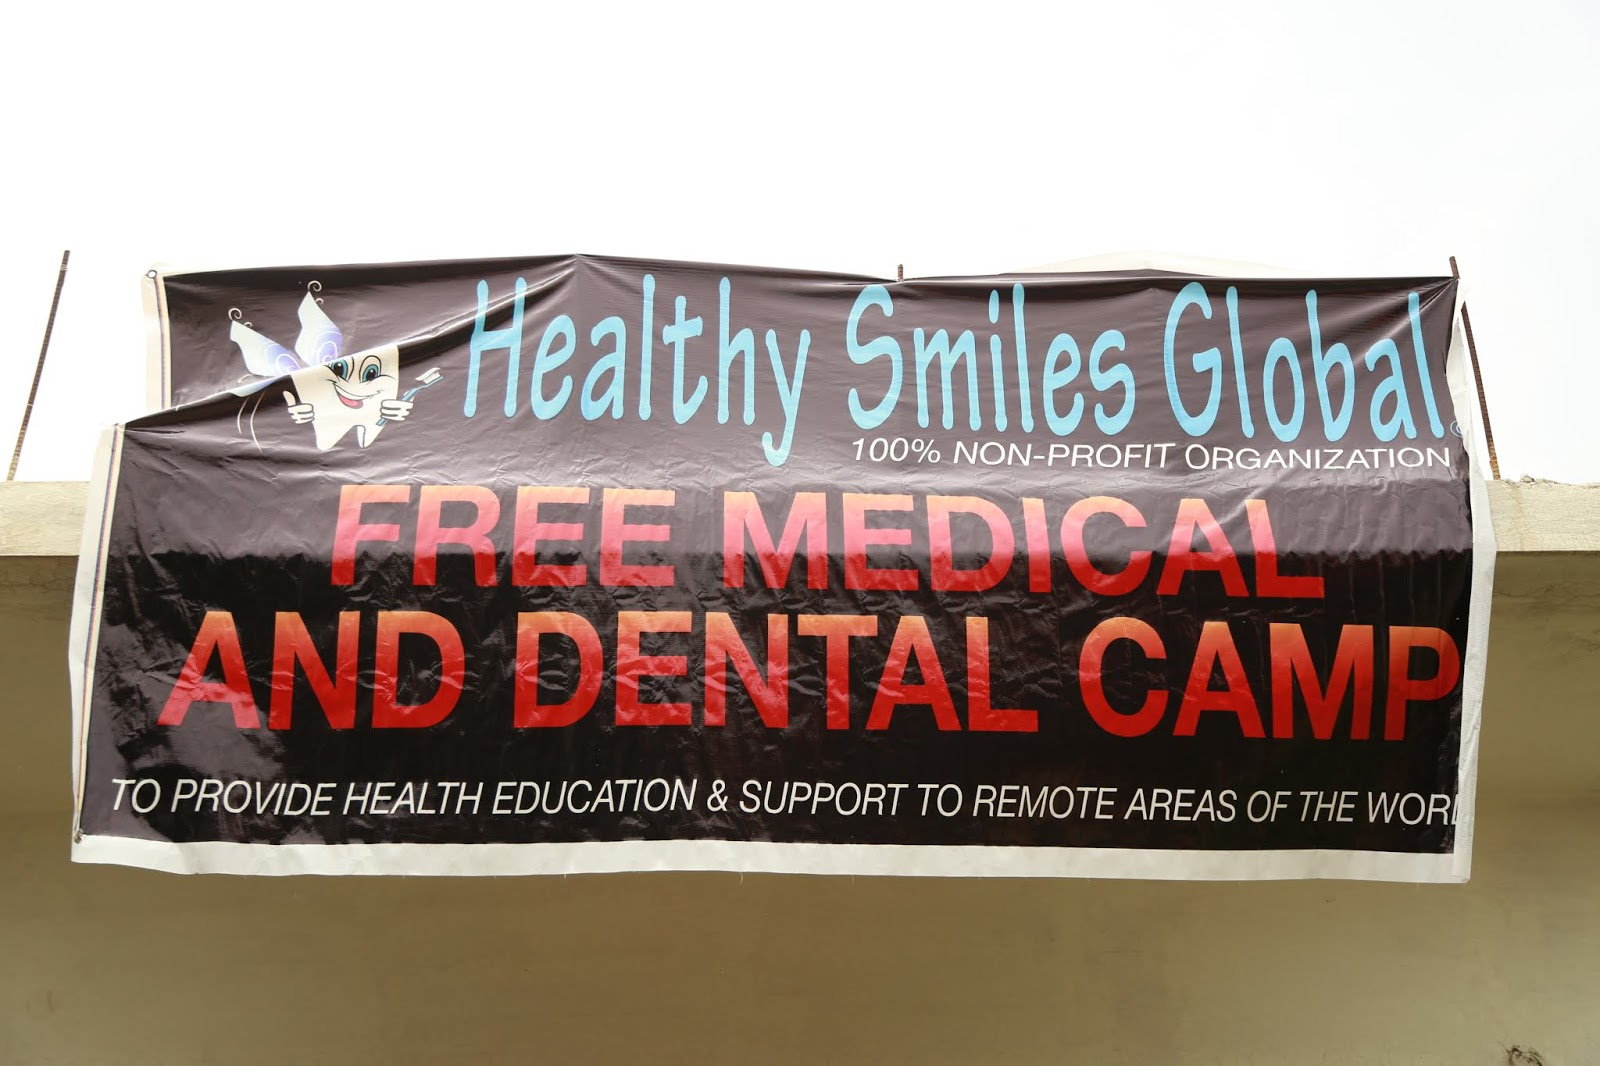 Helping Dentists!: Dental and Medical Volunteer Camp in